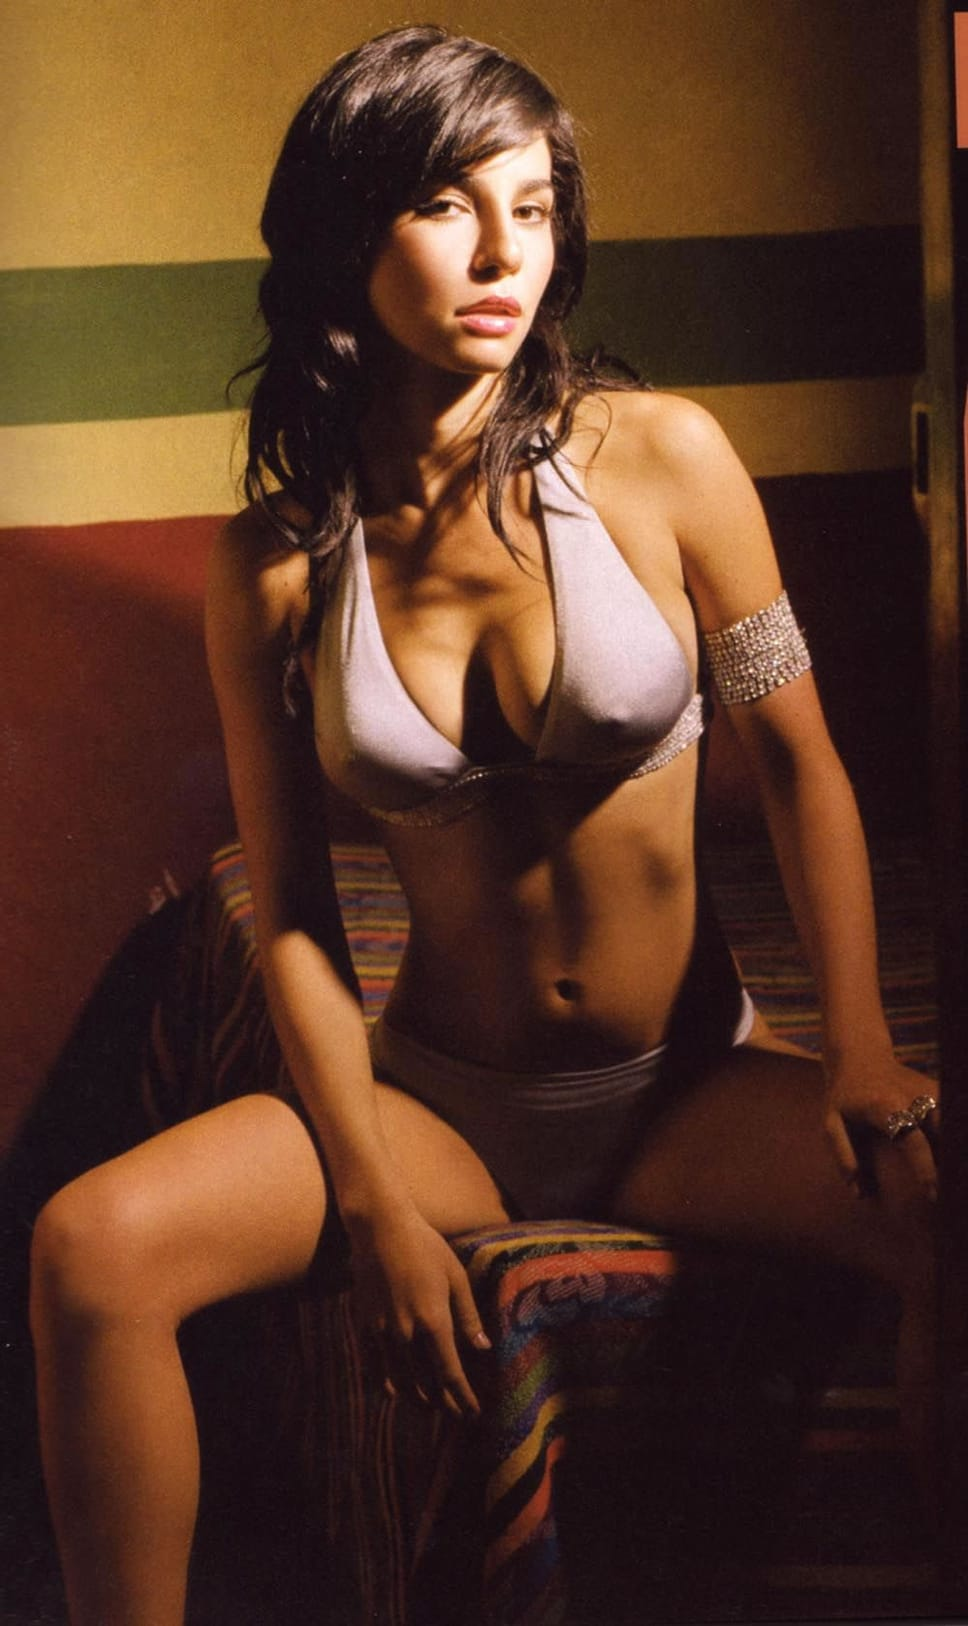 Nargis fakhri hot in dating naach pics of flowers 6